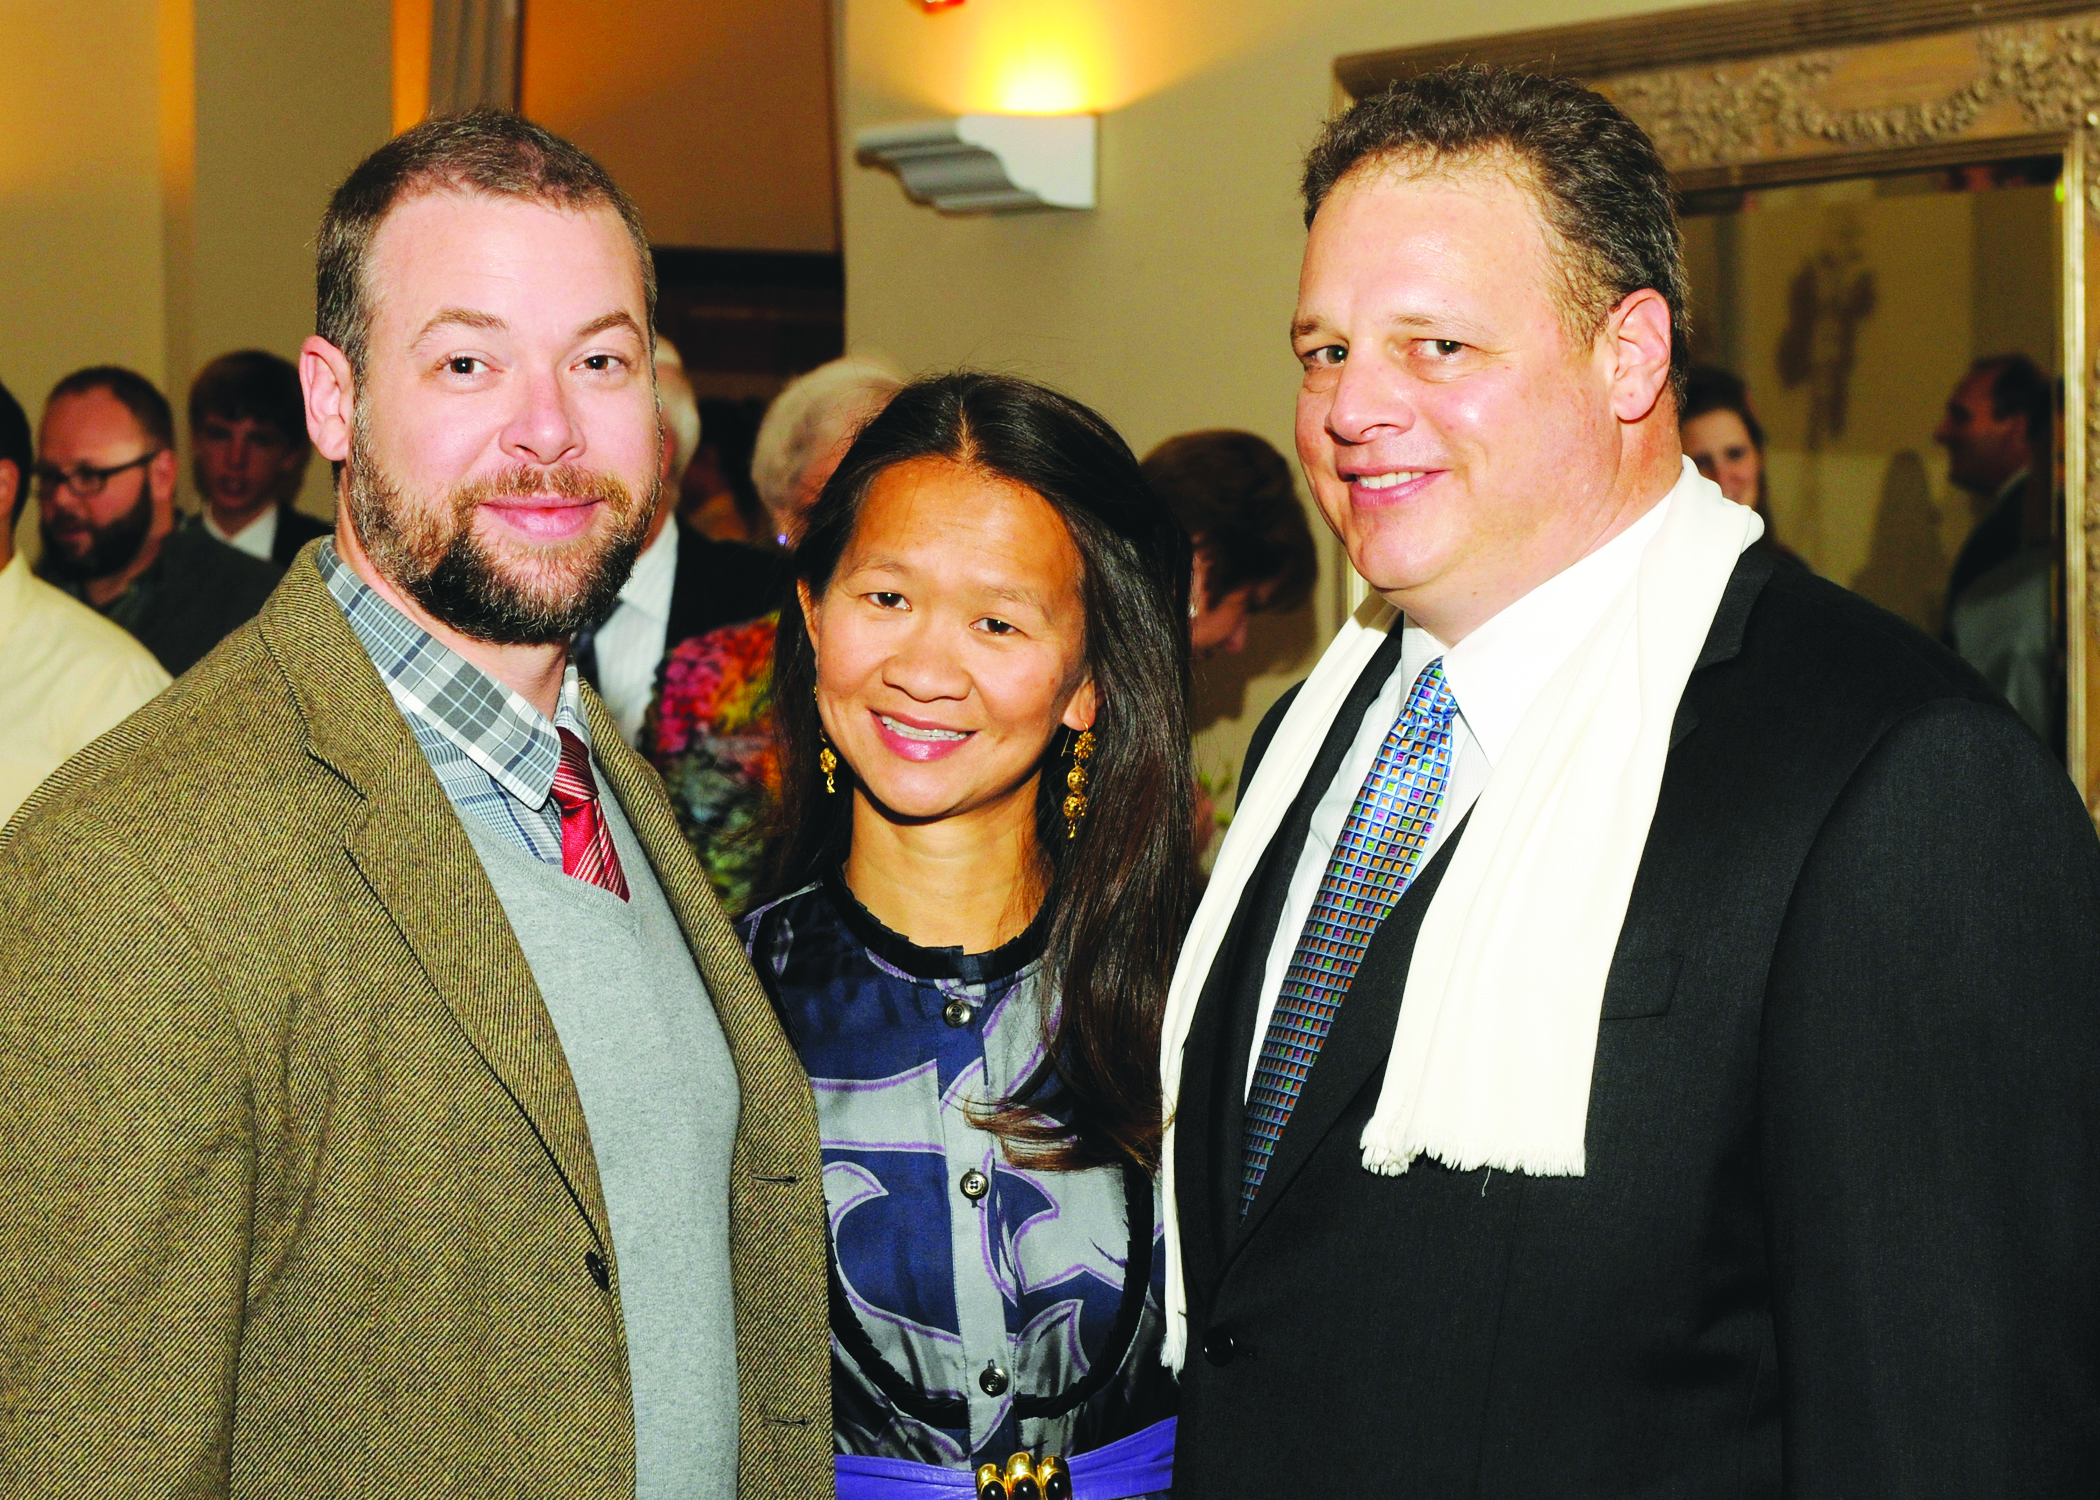 Trinh Huynh stands at mock trial fundraising event with the two other coaches, Brian Leah and Carol Gebo. Huynh was a coach of the team for 11 years.